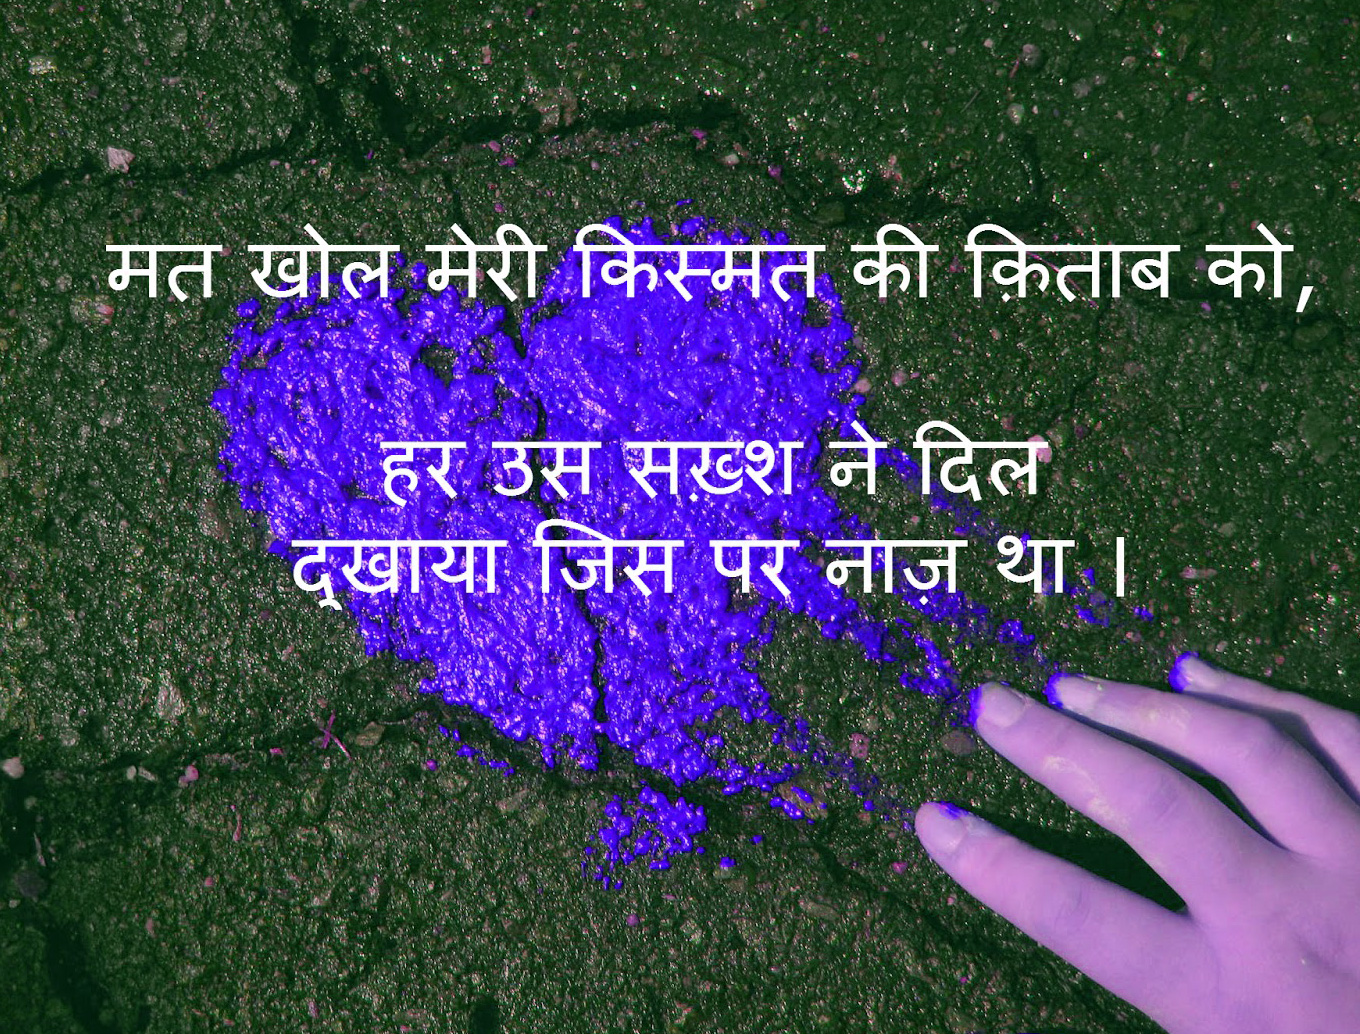 HINDI SAD LOVE QUOTES IMAGES PHOTO PICS DOWNL